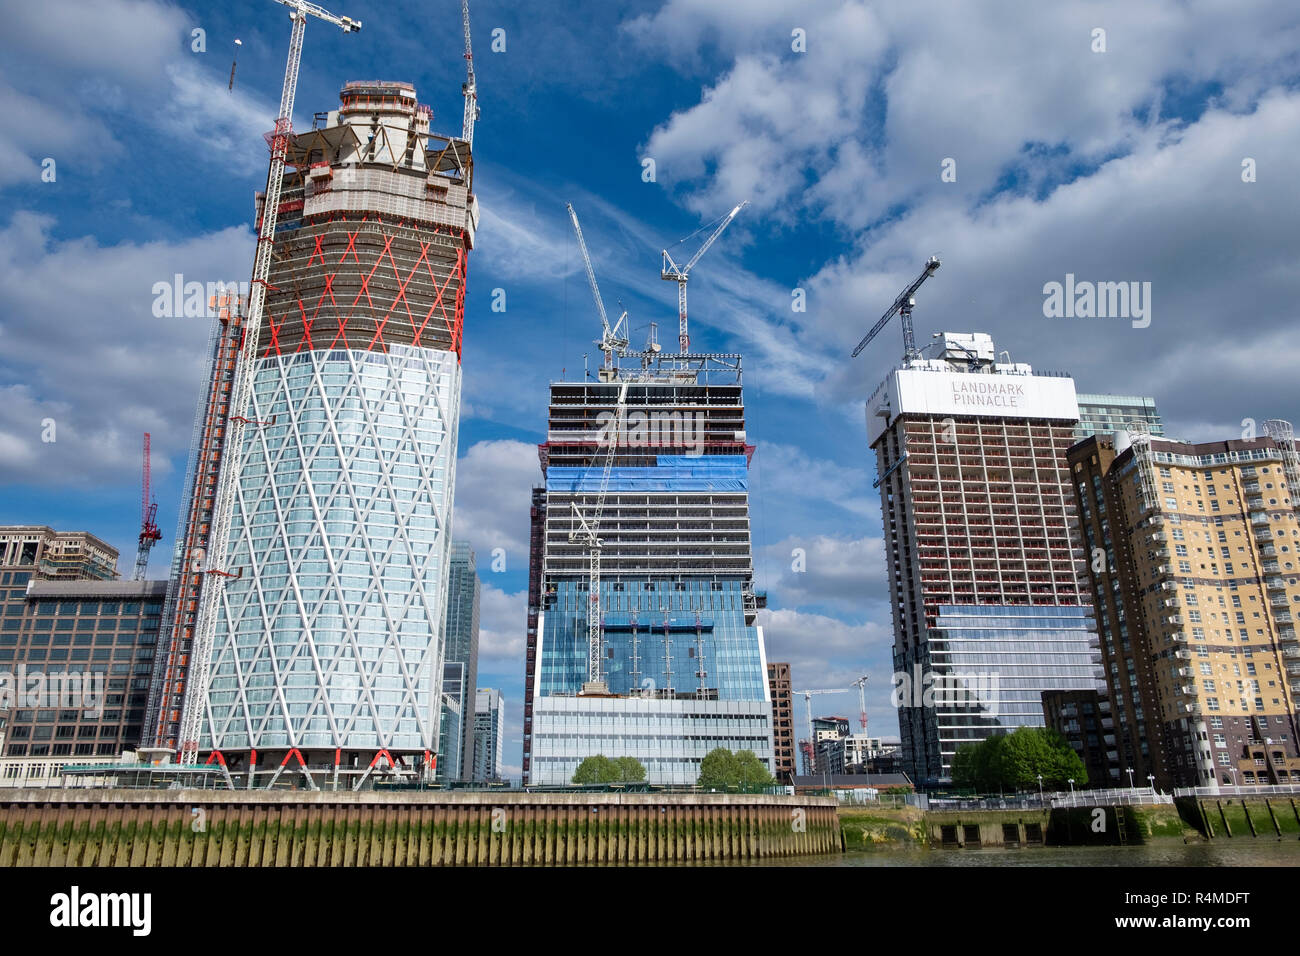 Docklands buildings and construction, London, UK - Stock Image